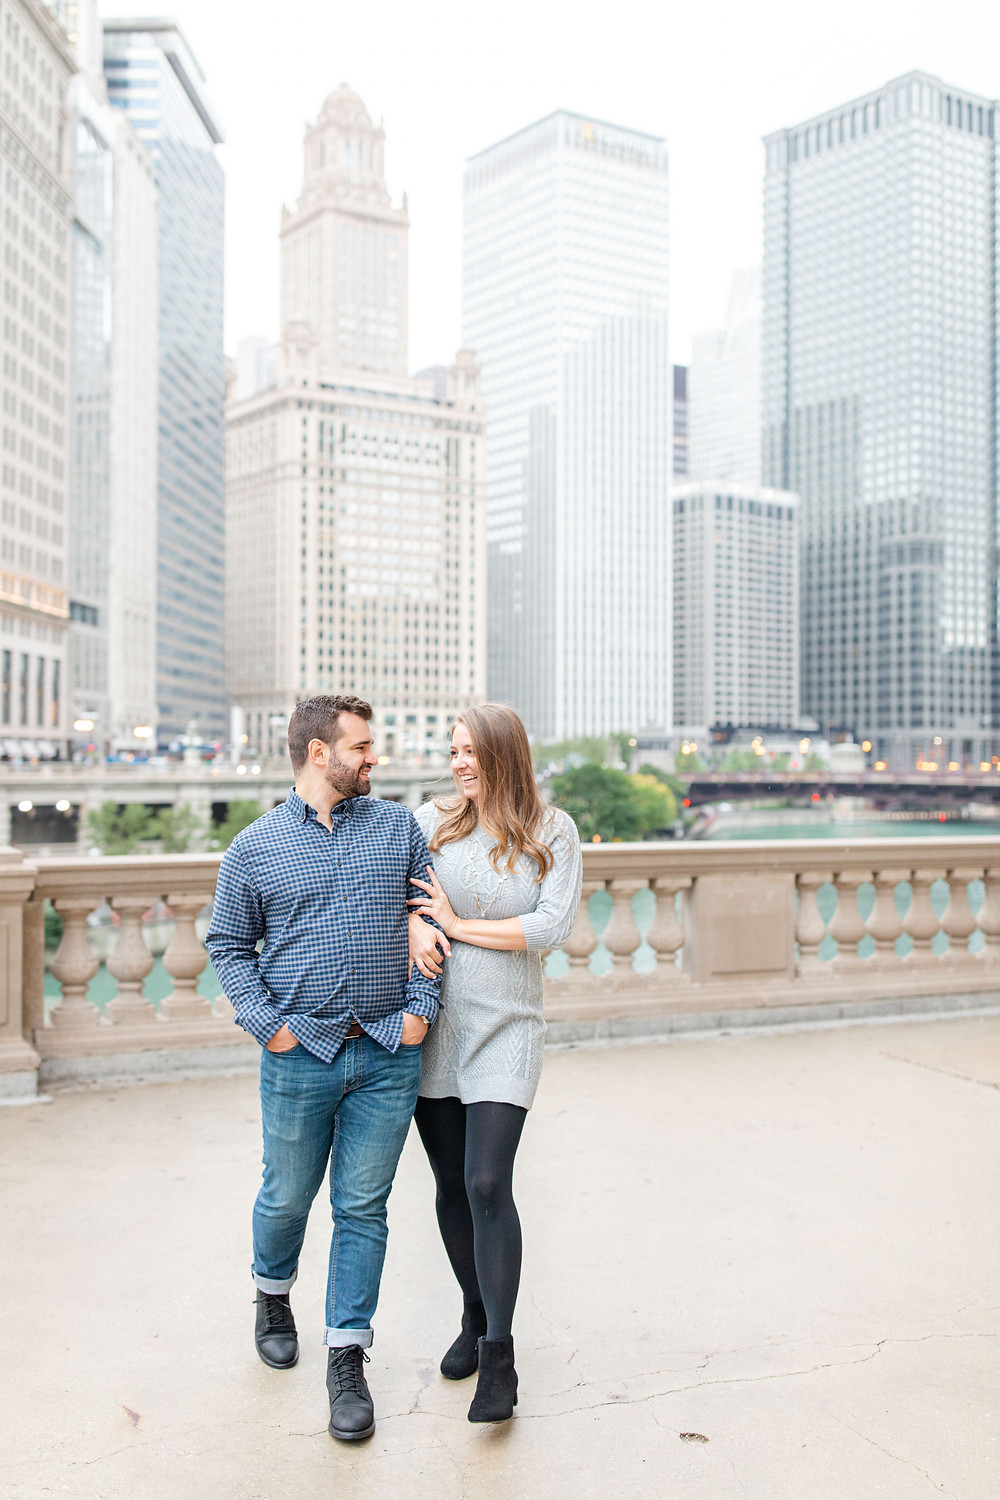 Josh and Andrea Photography Cute couple Chicago smiling walking